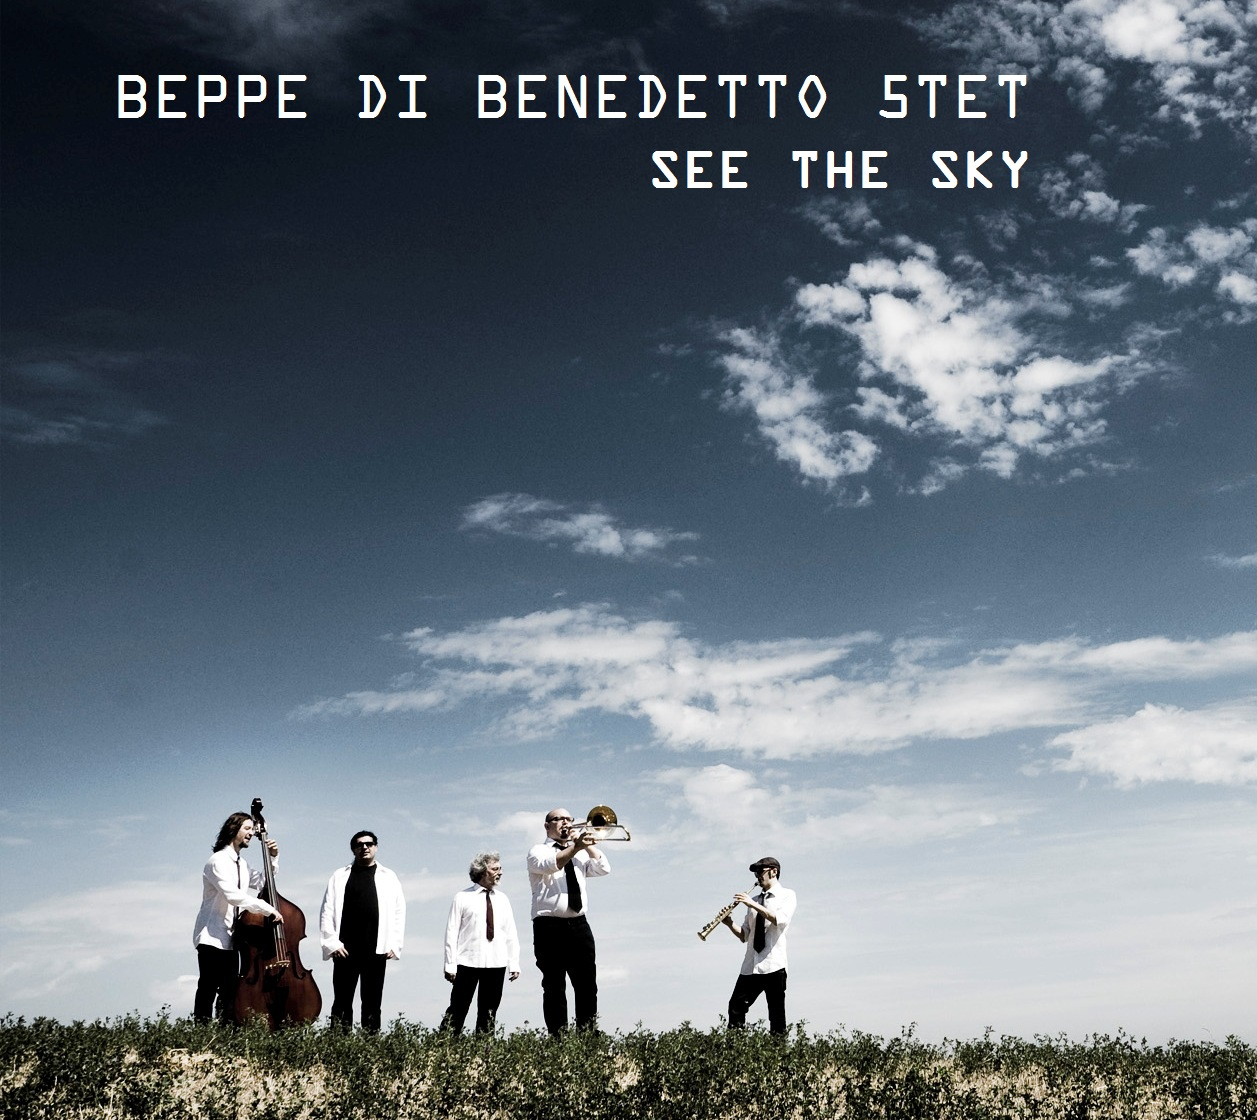 See The Sky, Beppe Di Benedetto 5tet